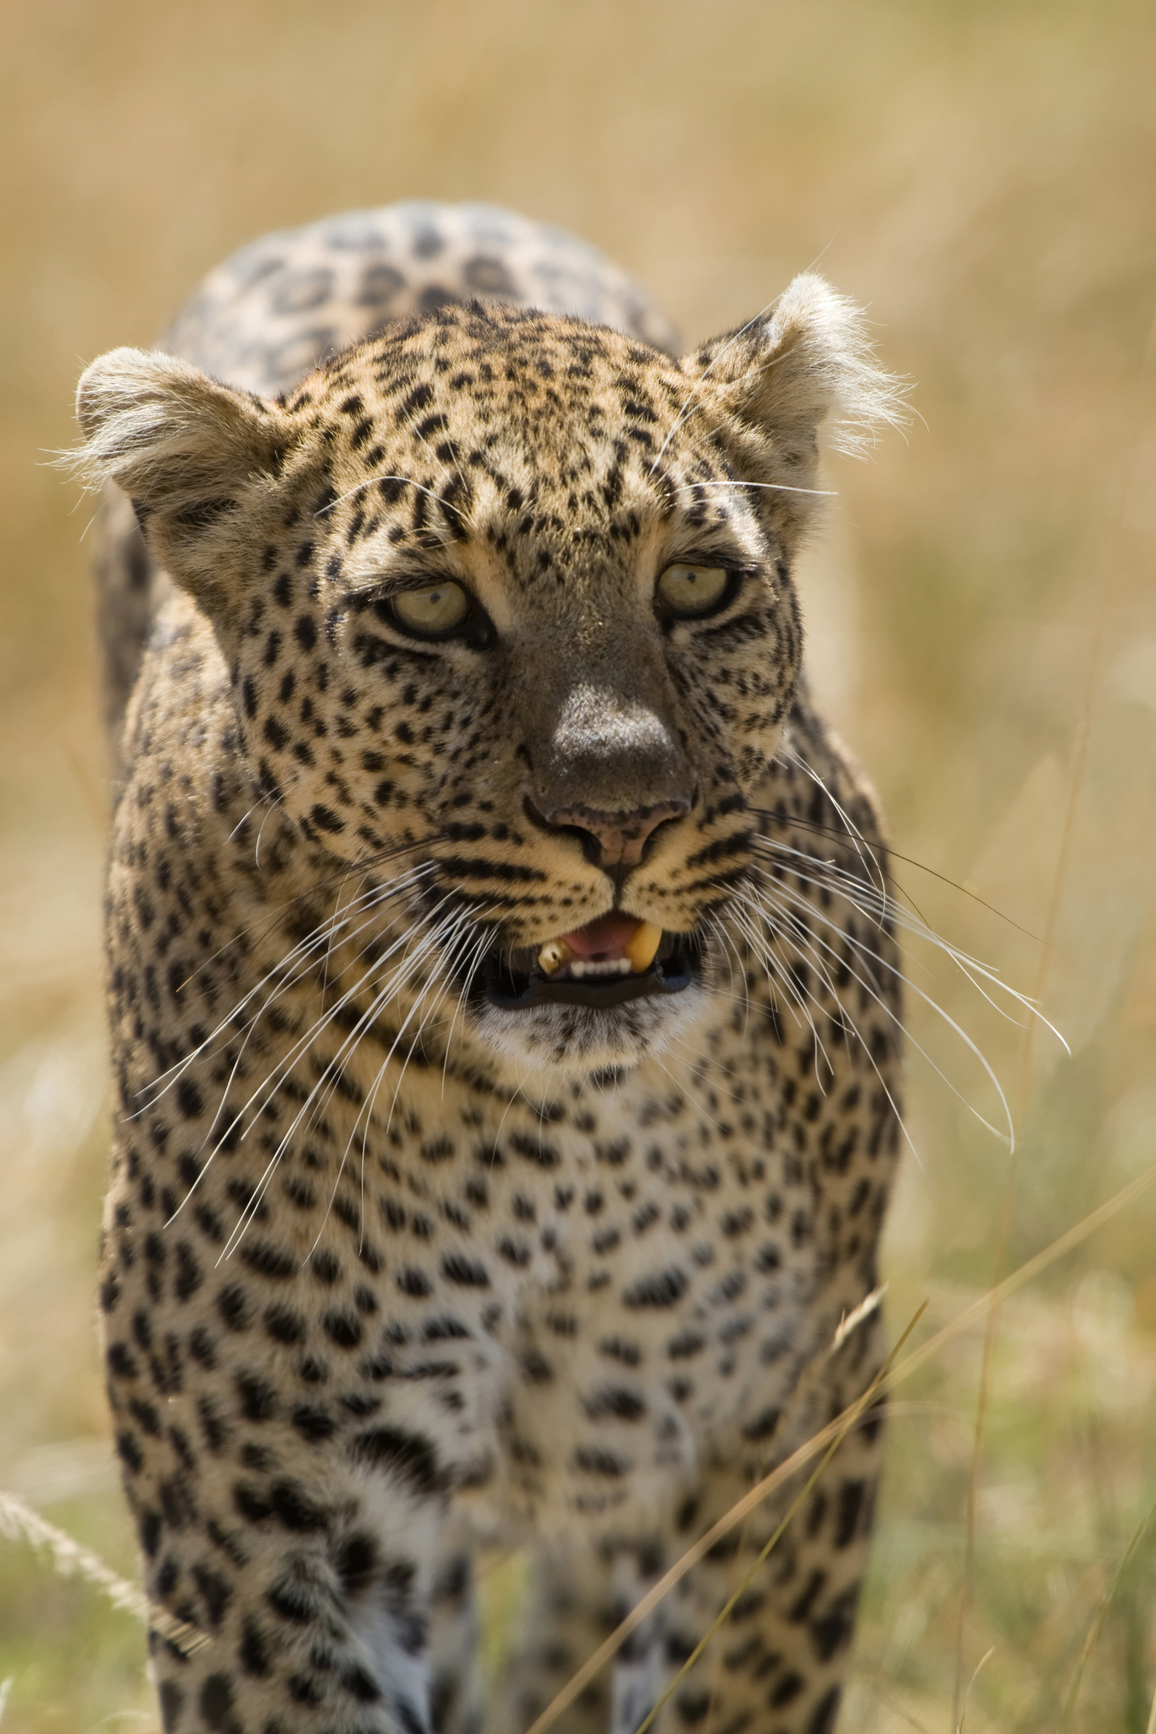 A close up of a leopard and its teeth